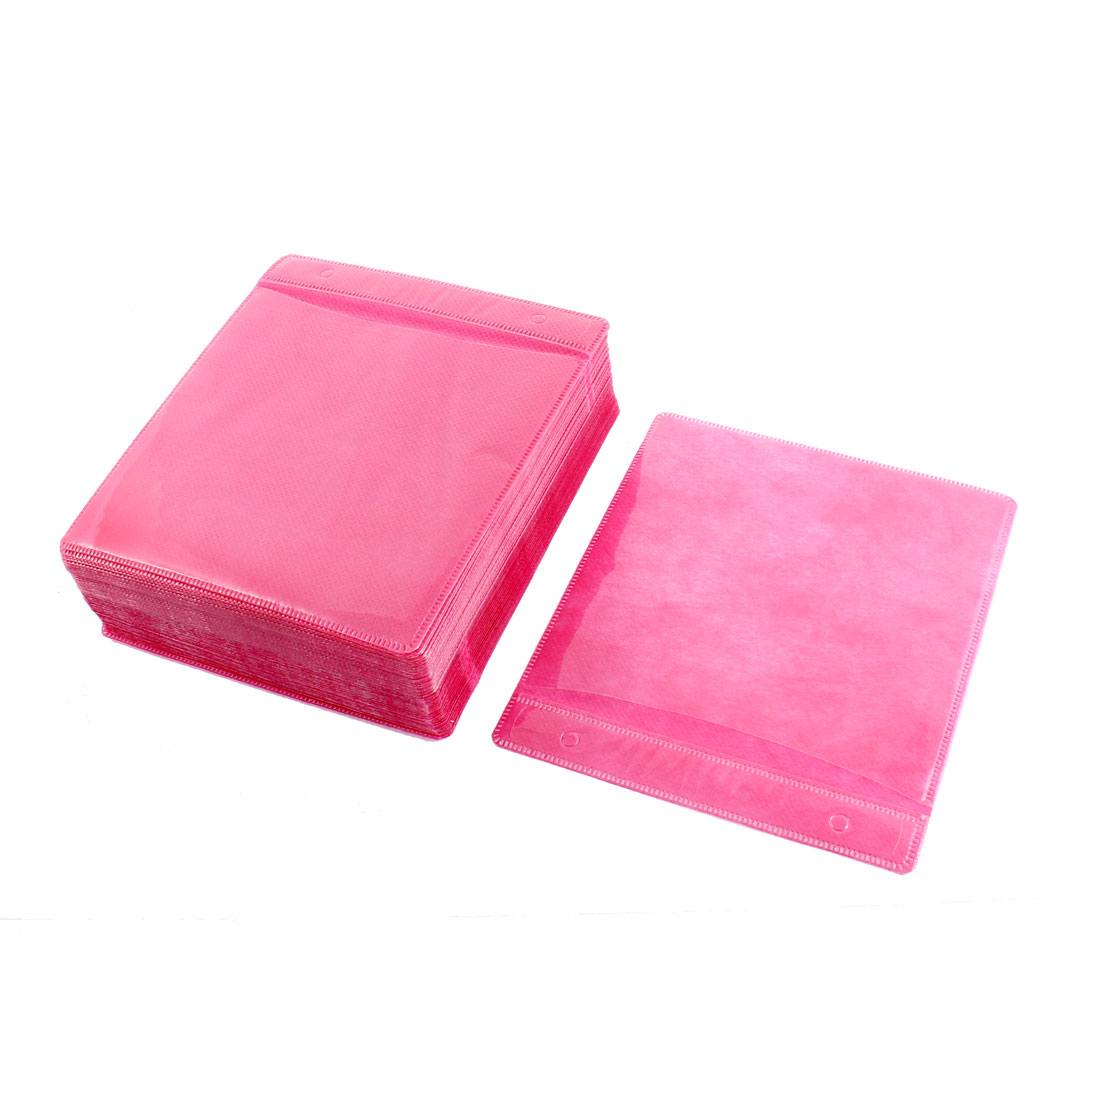 Disc CD DVD Double Sided Storage Holder Sleeve Bags Hot Pink 100 PCS